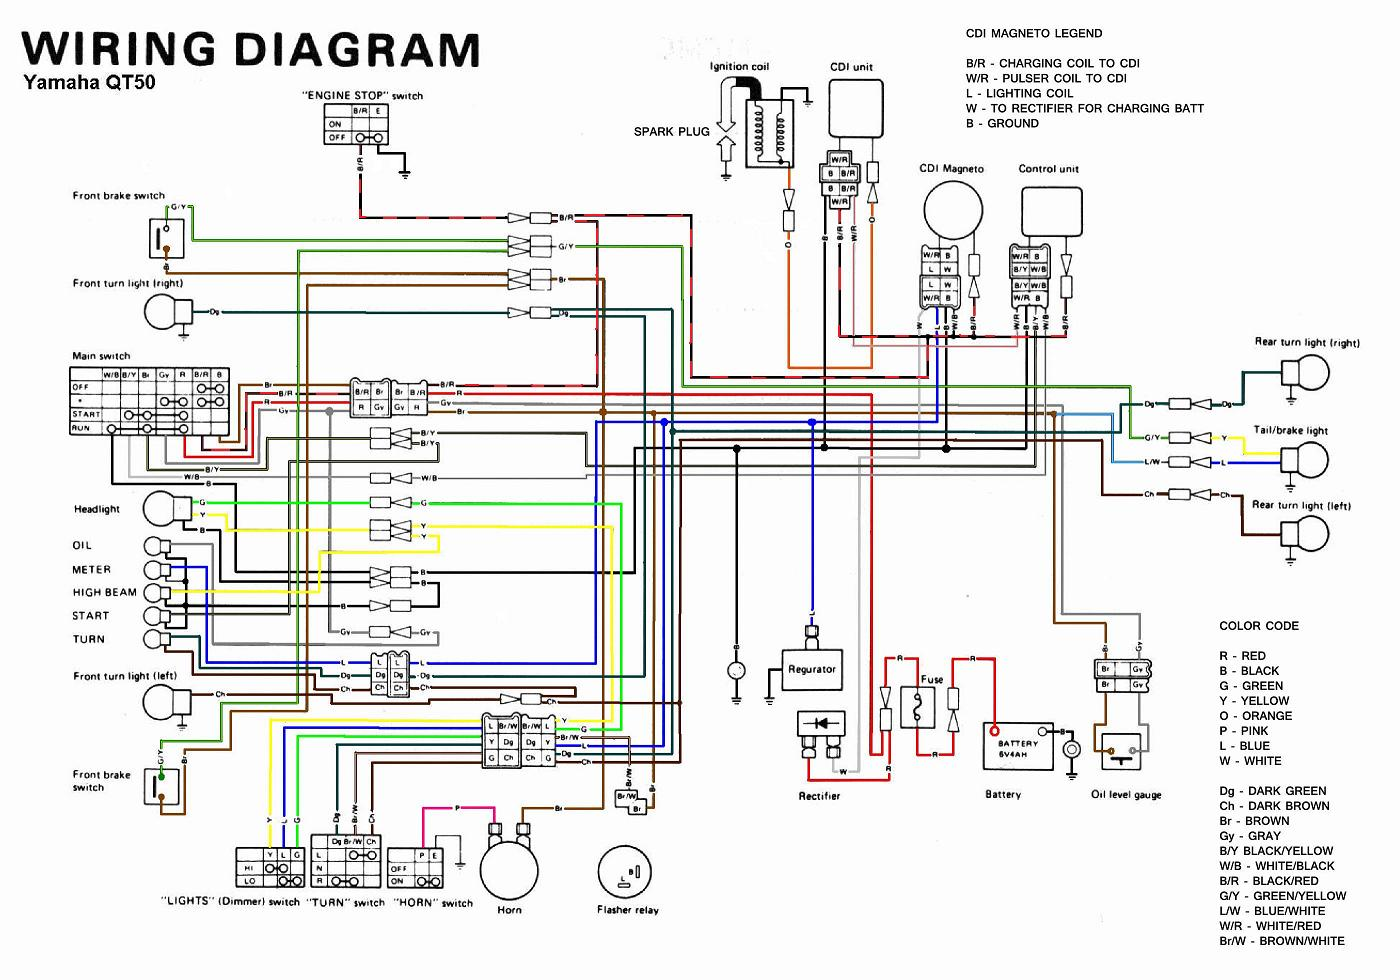 2001 Honda Foreman 450 Parts Diagram Excellent Electrical Wiring